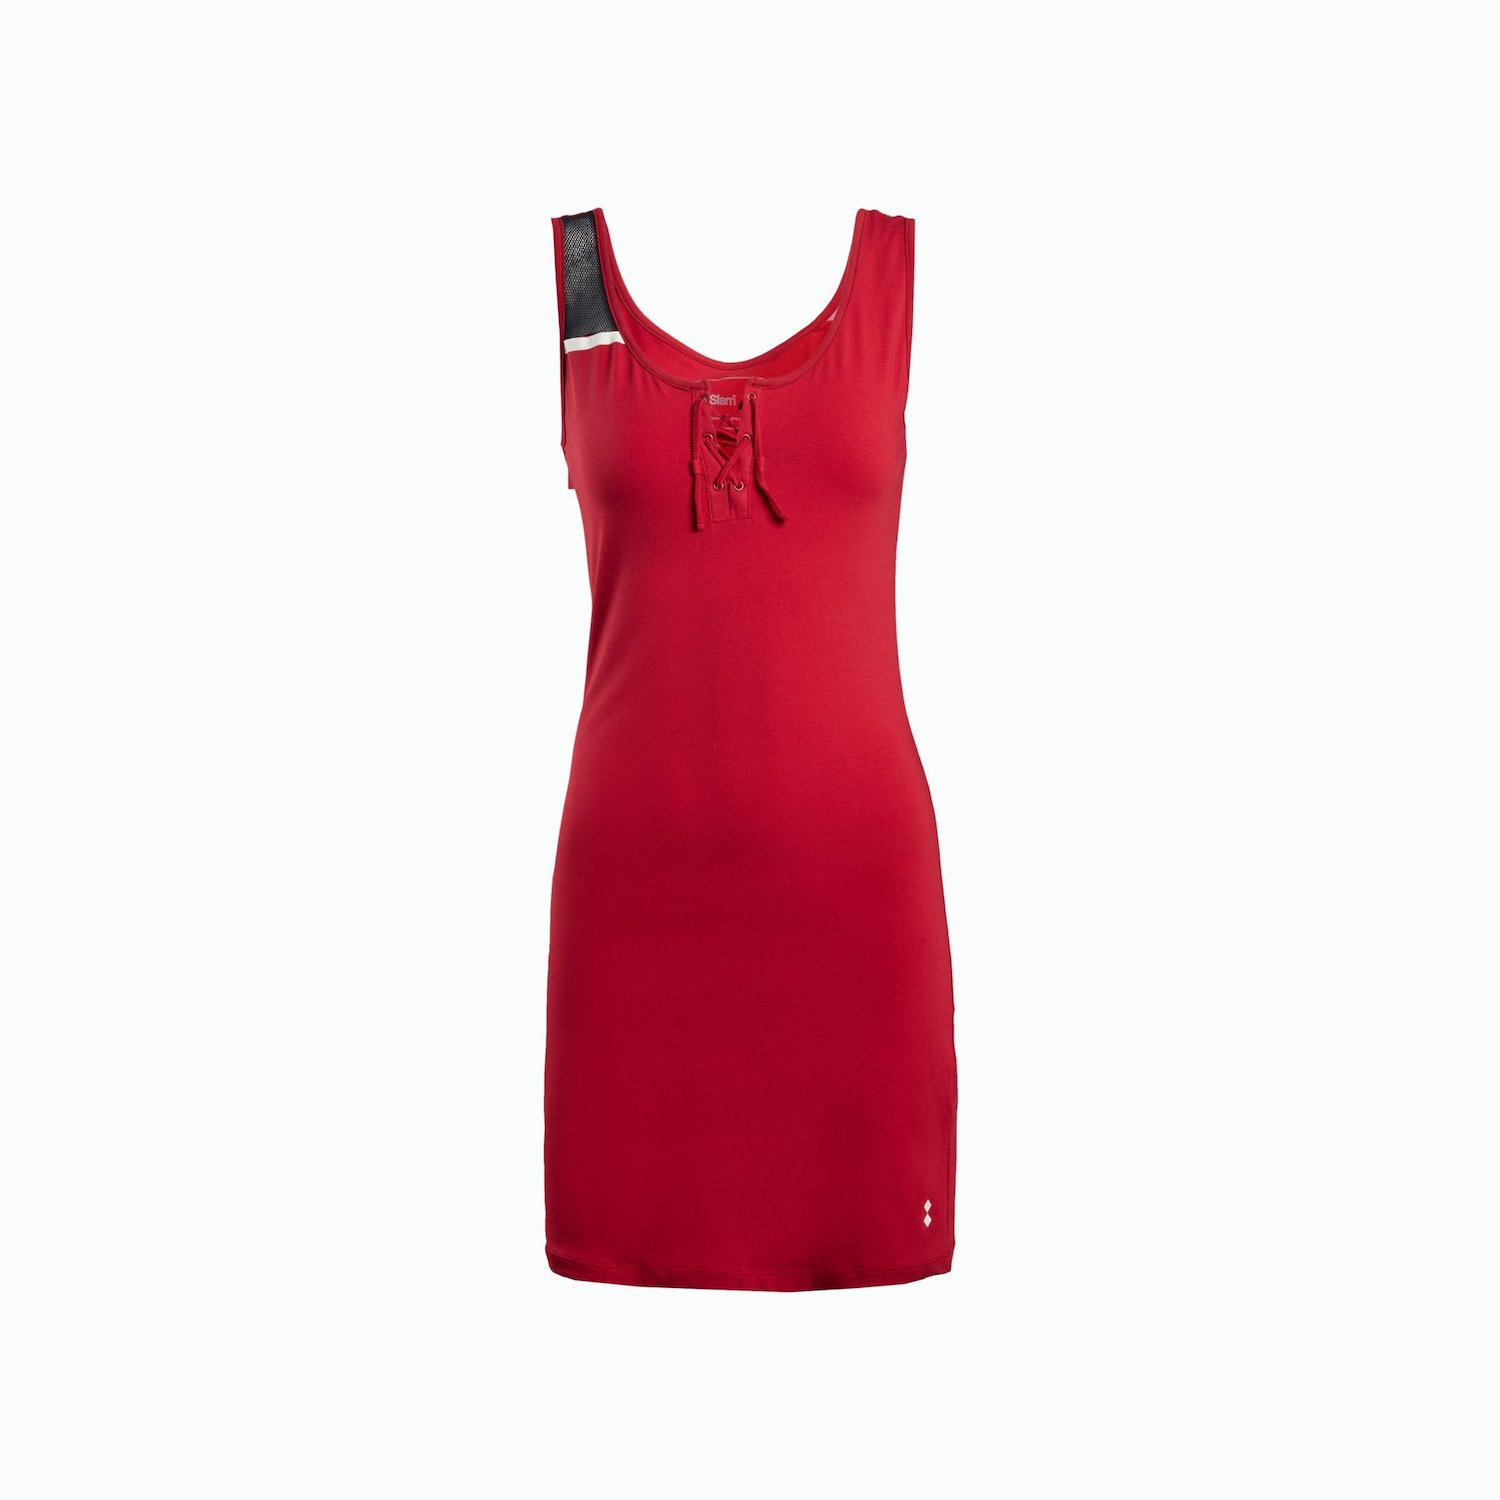 DRESS A118 - Rojo Chili